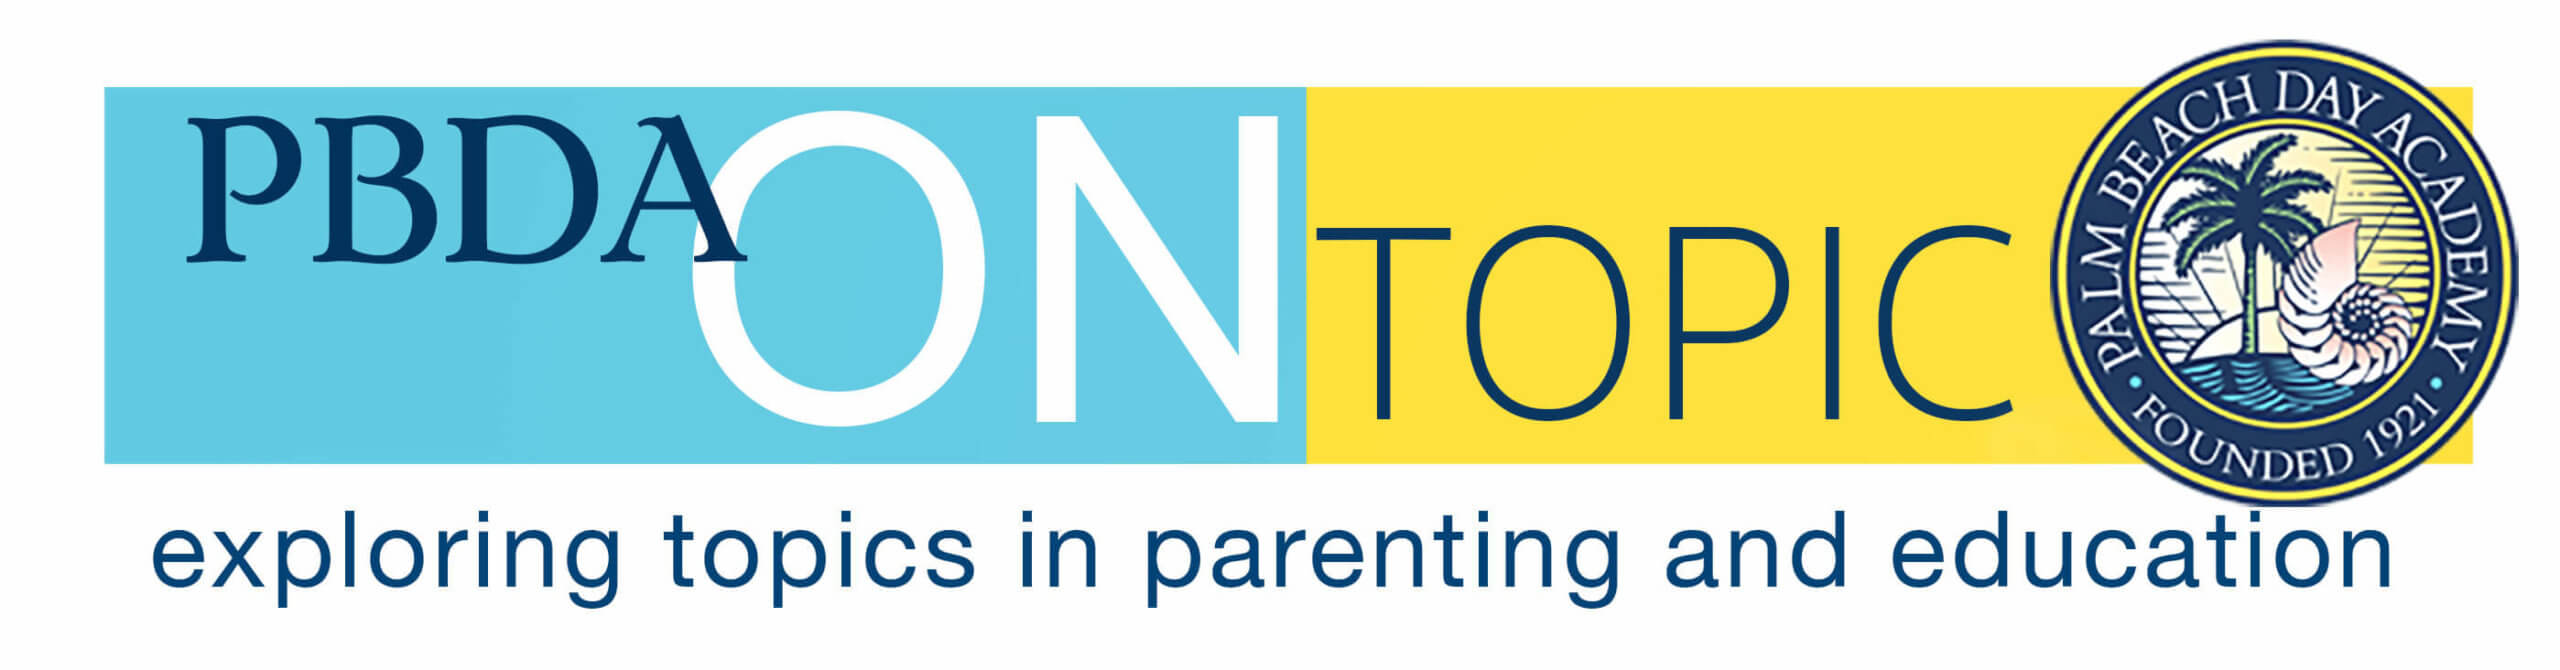 PBDA On Topic exploring topics in parenting and education Palm Beach events